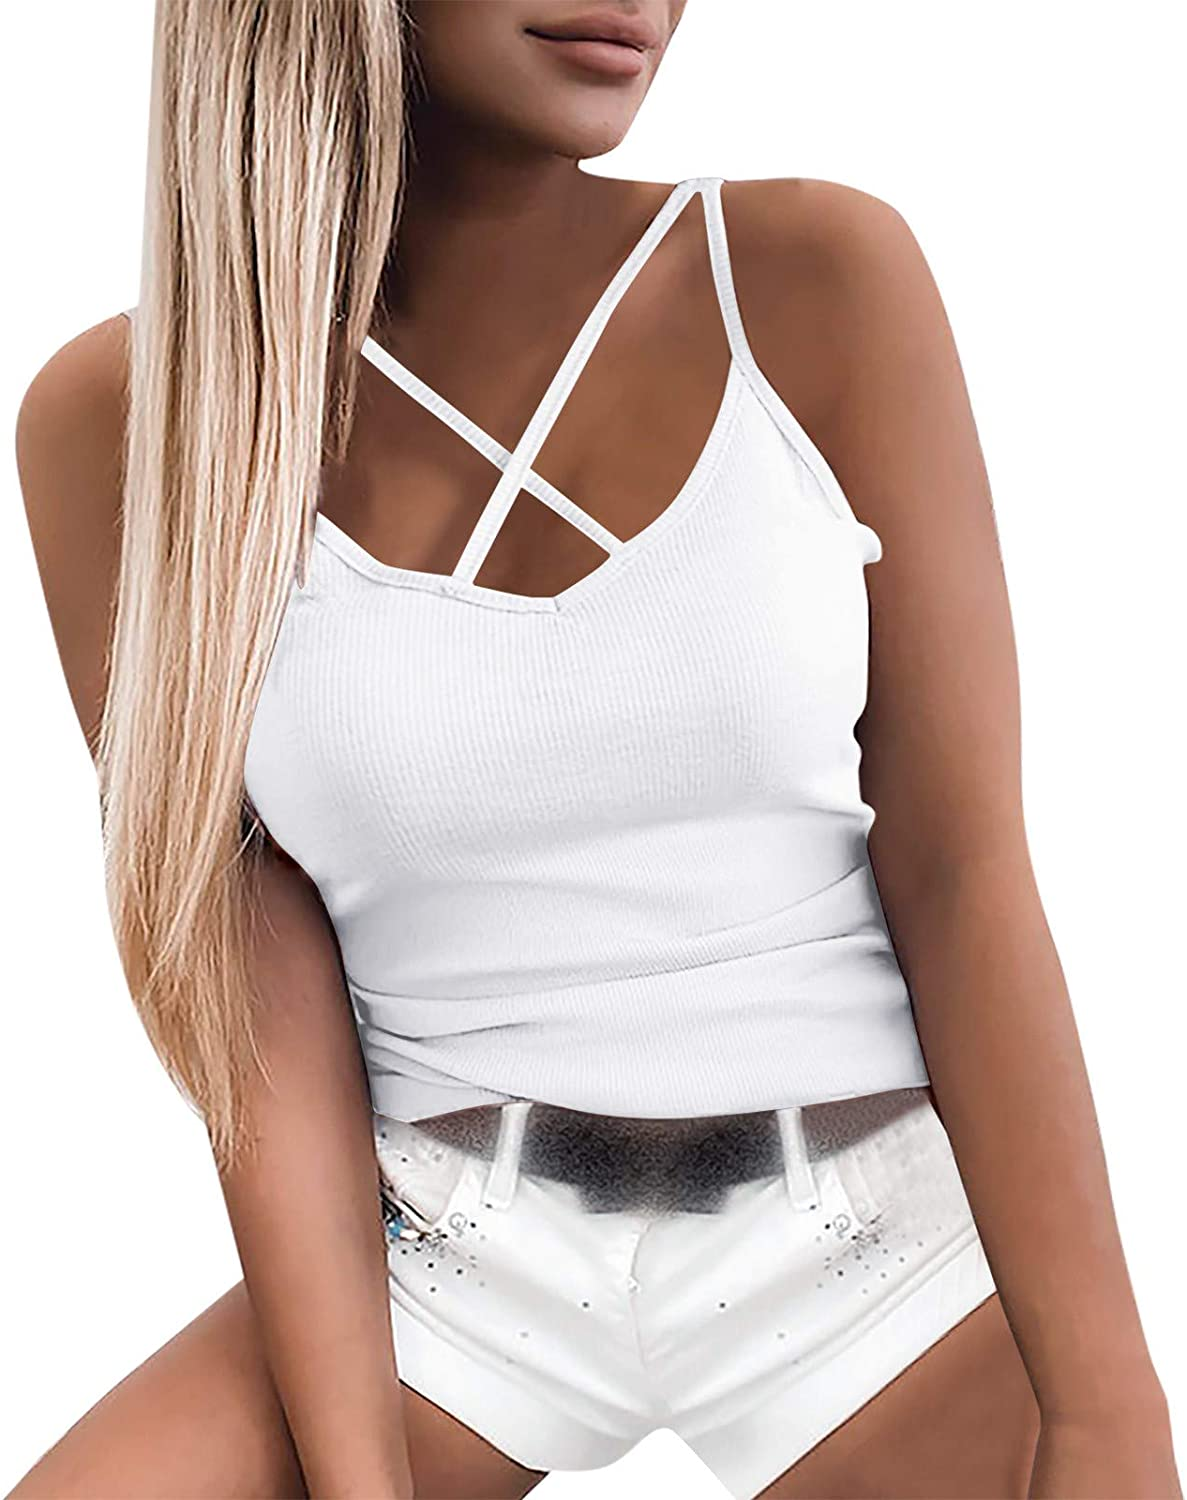 Womens SEAL limited product Sleeveless Fashion Cross Strap Tank 5 ☆ very popular Camisole T-Shirt Top